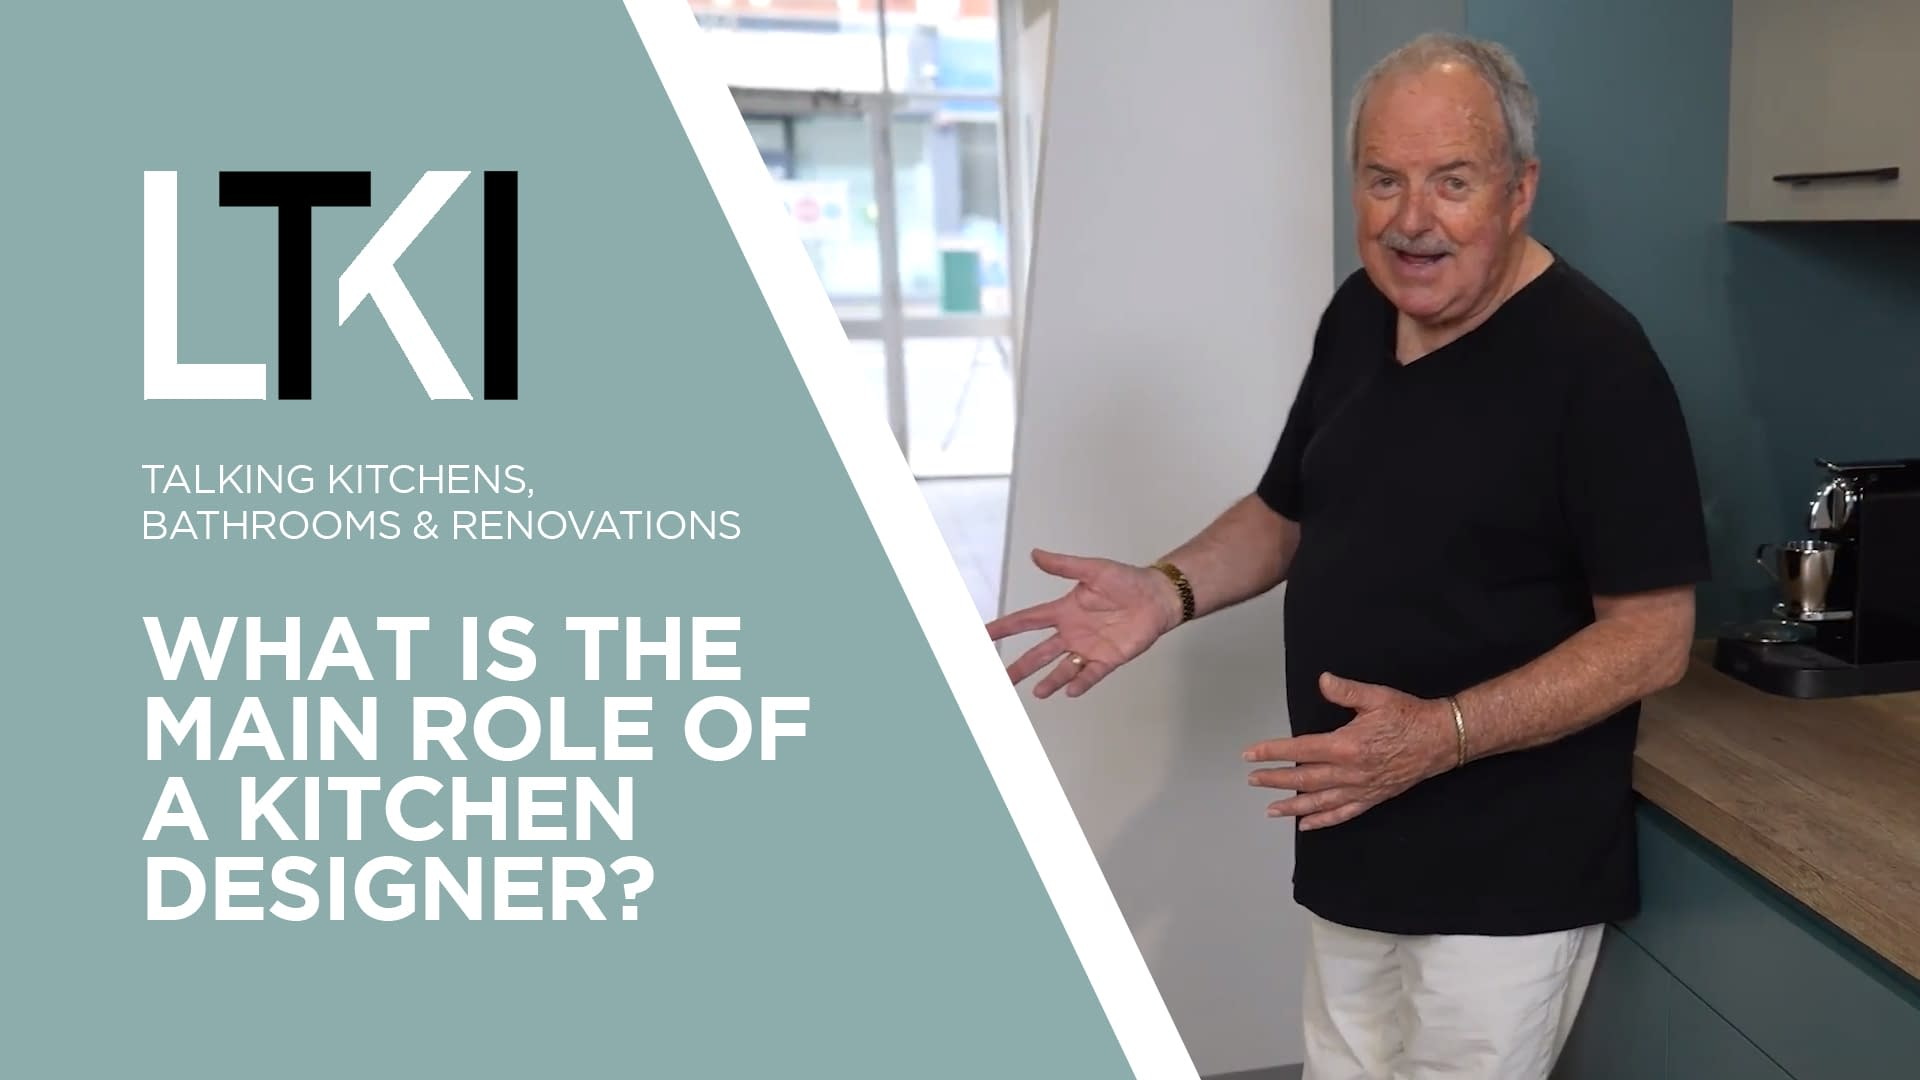 Talking Kitchens, Bathrooms & Renovations: What Is The Main Role Of A Kitchen Designer?